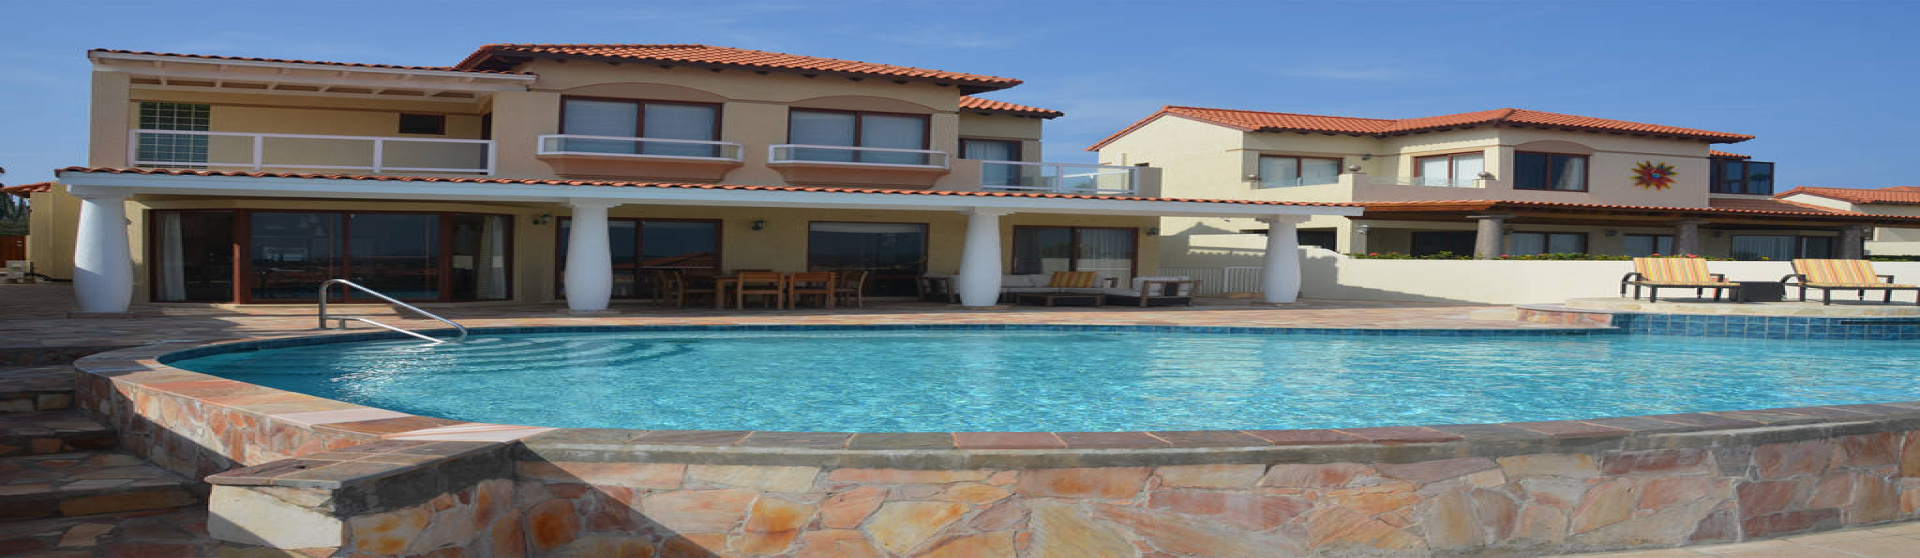 Malmok, Aruba, 4 Bedrooms Bedrooms, ,5 BathroomsBathrooms,Villa,For Sale,Malmok, Aruba,18461